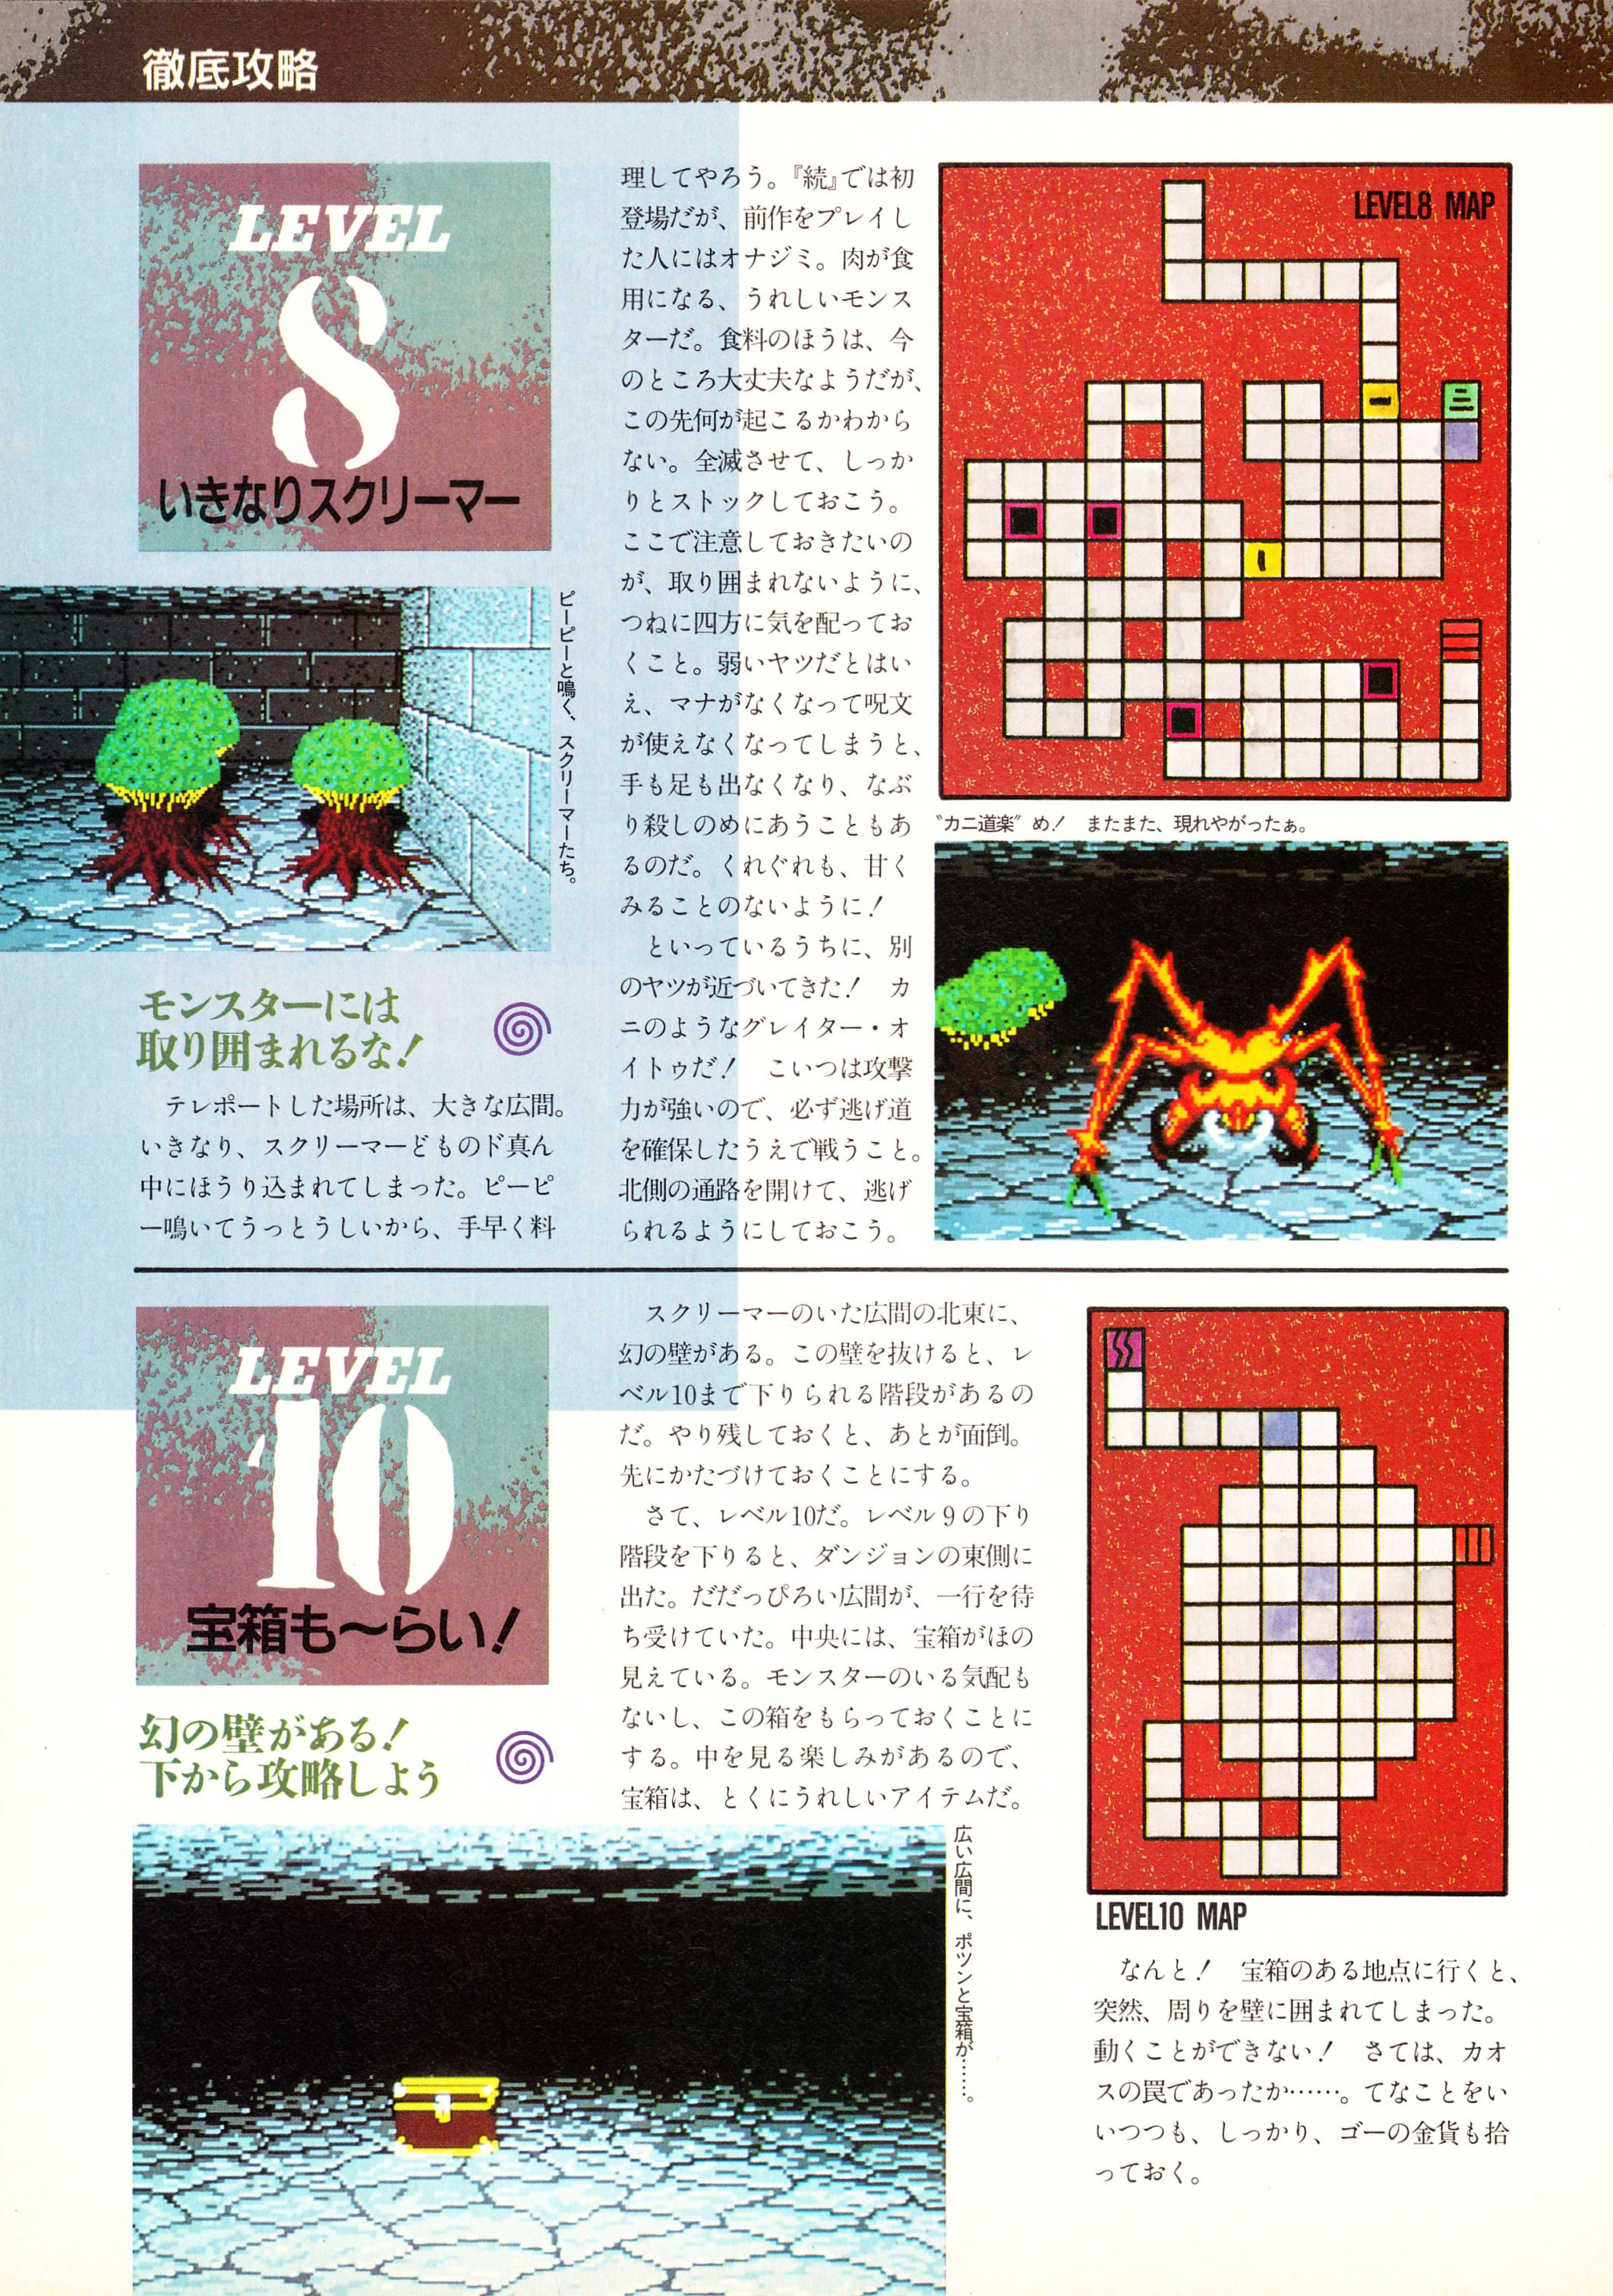 Supplement - Chaos Strikes Back Companion Guide II Guide published in Japanese magazine 'Popcom', Vol 9 No 3 01 March 1991, Page 8